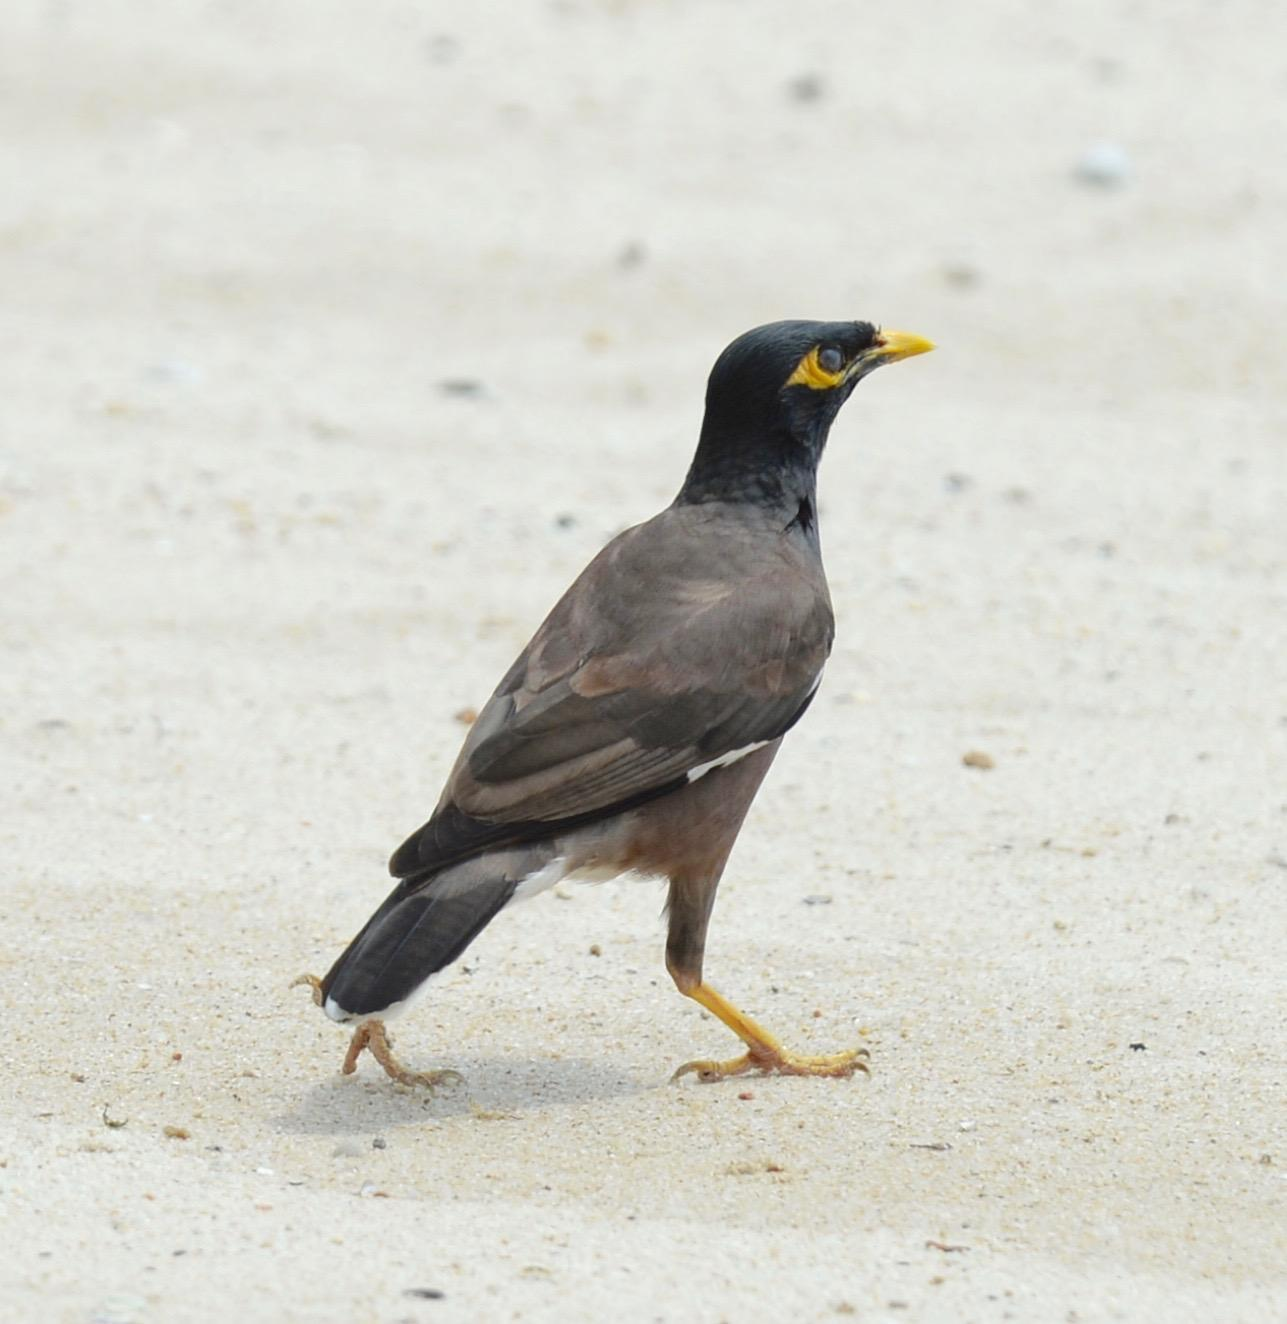 Common Myna Photo by marcel finlay